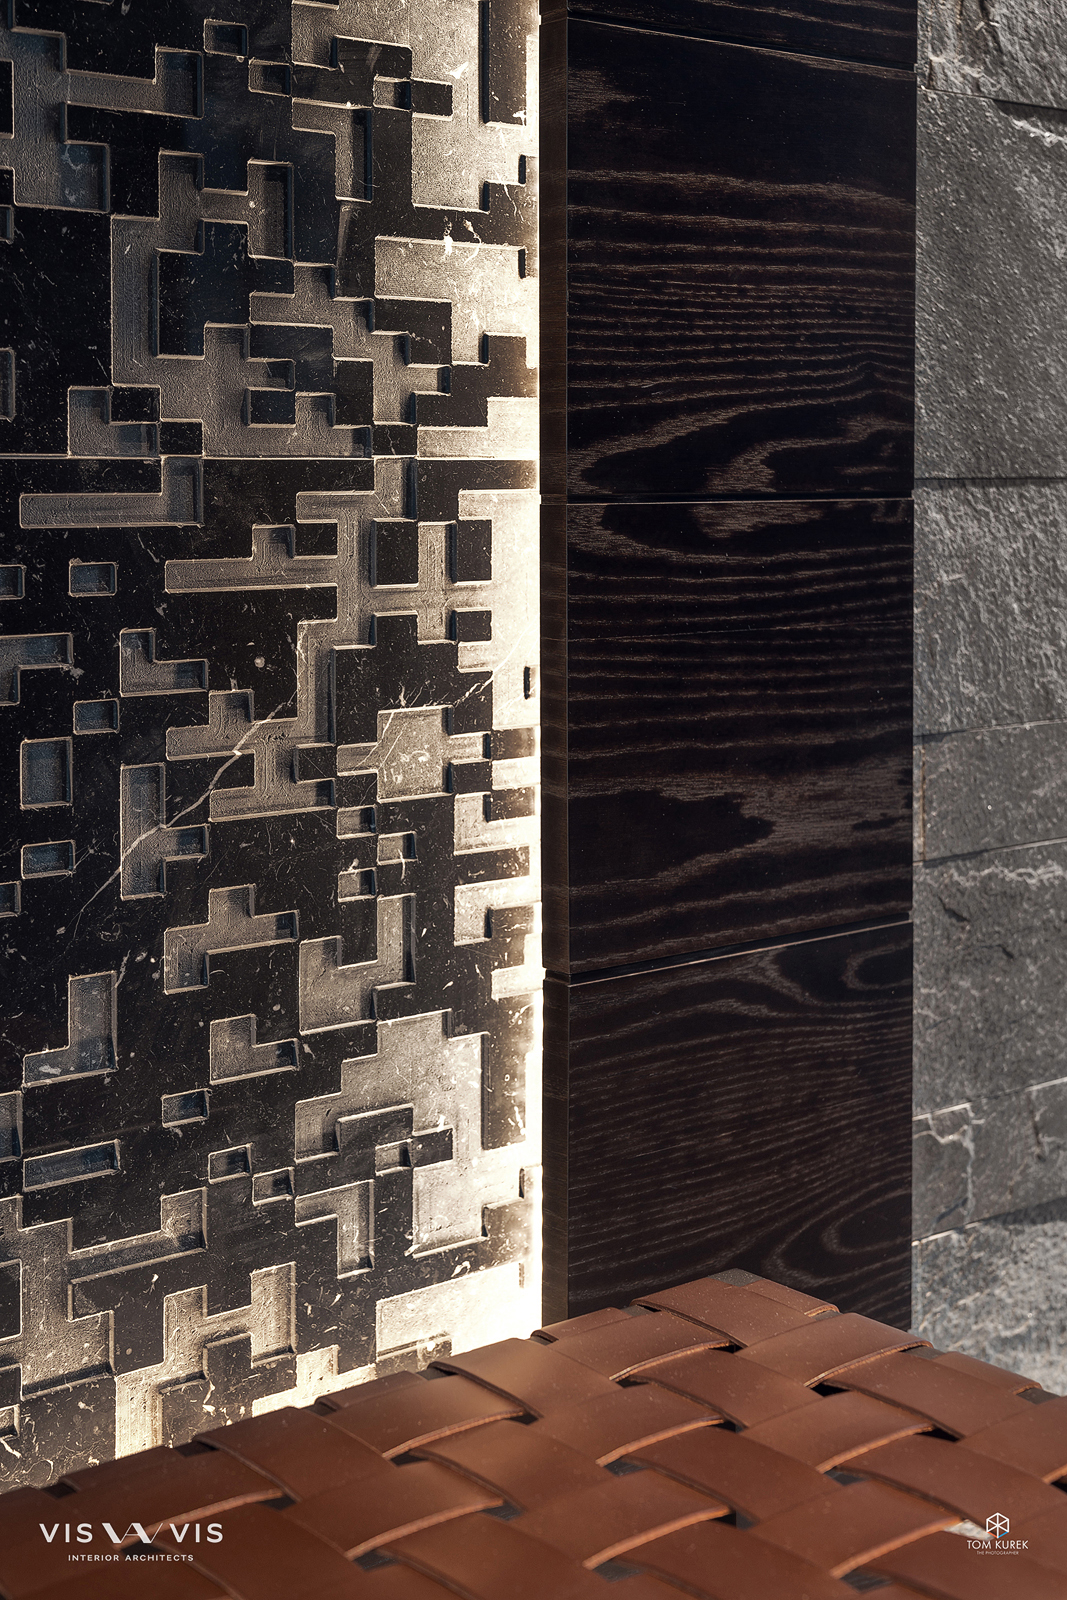 Detail of the custom textures in stone and leather.